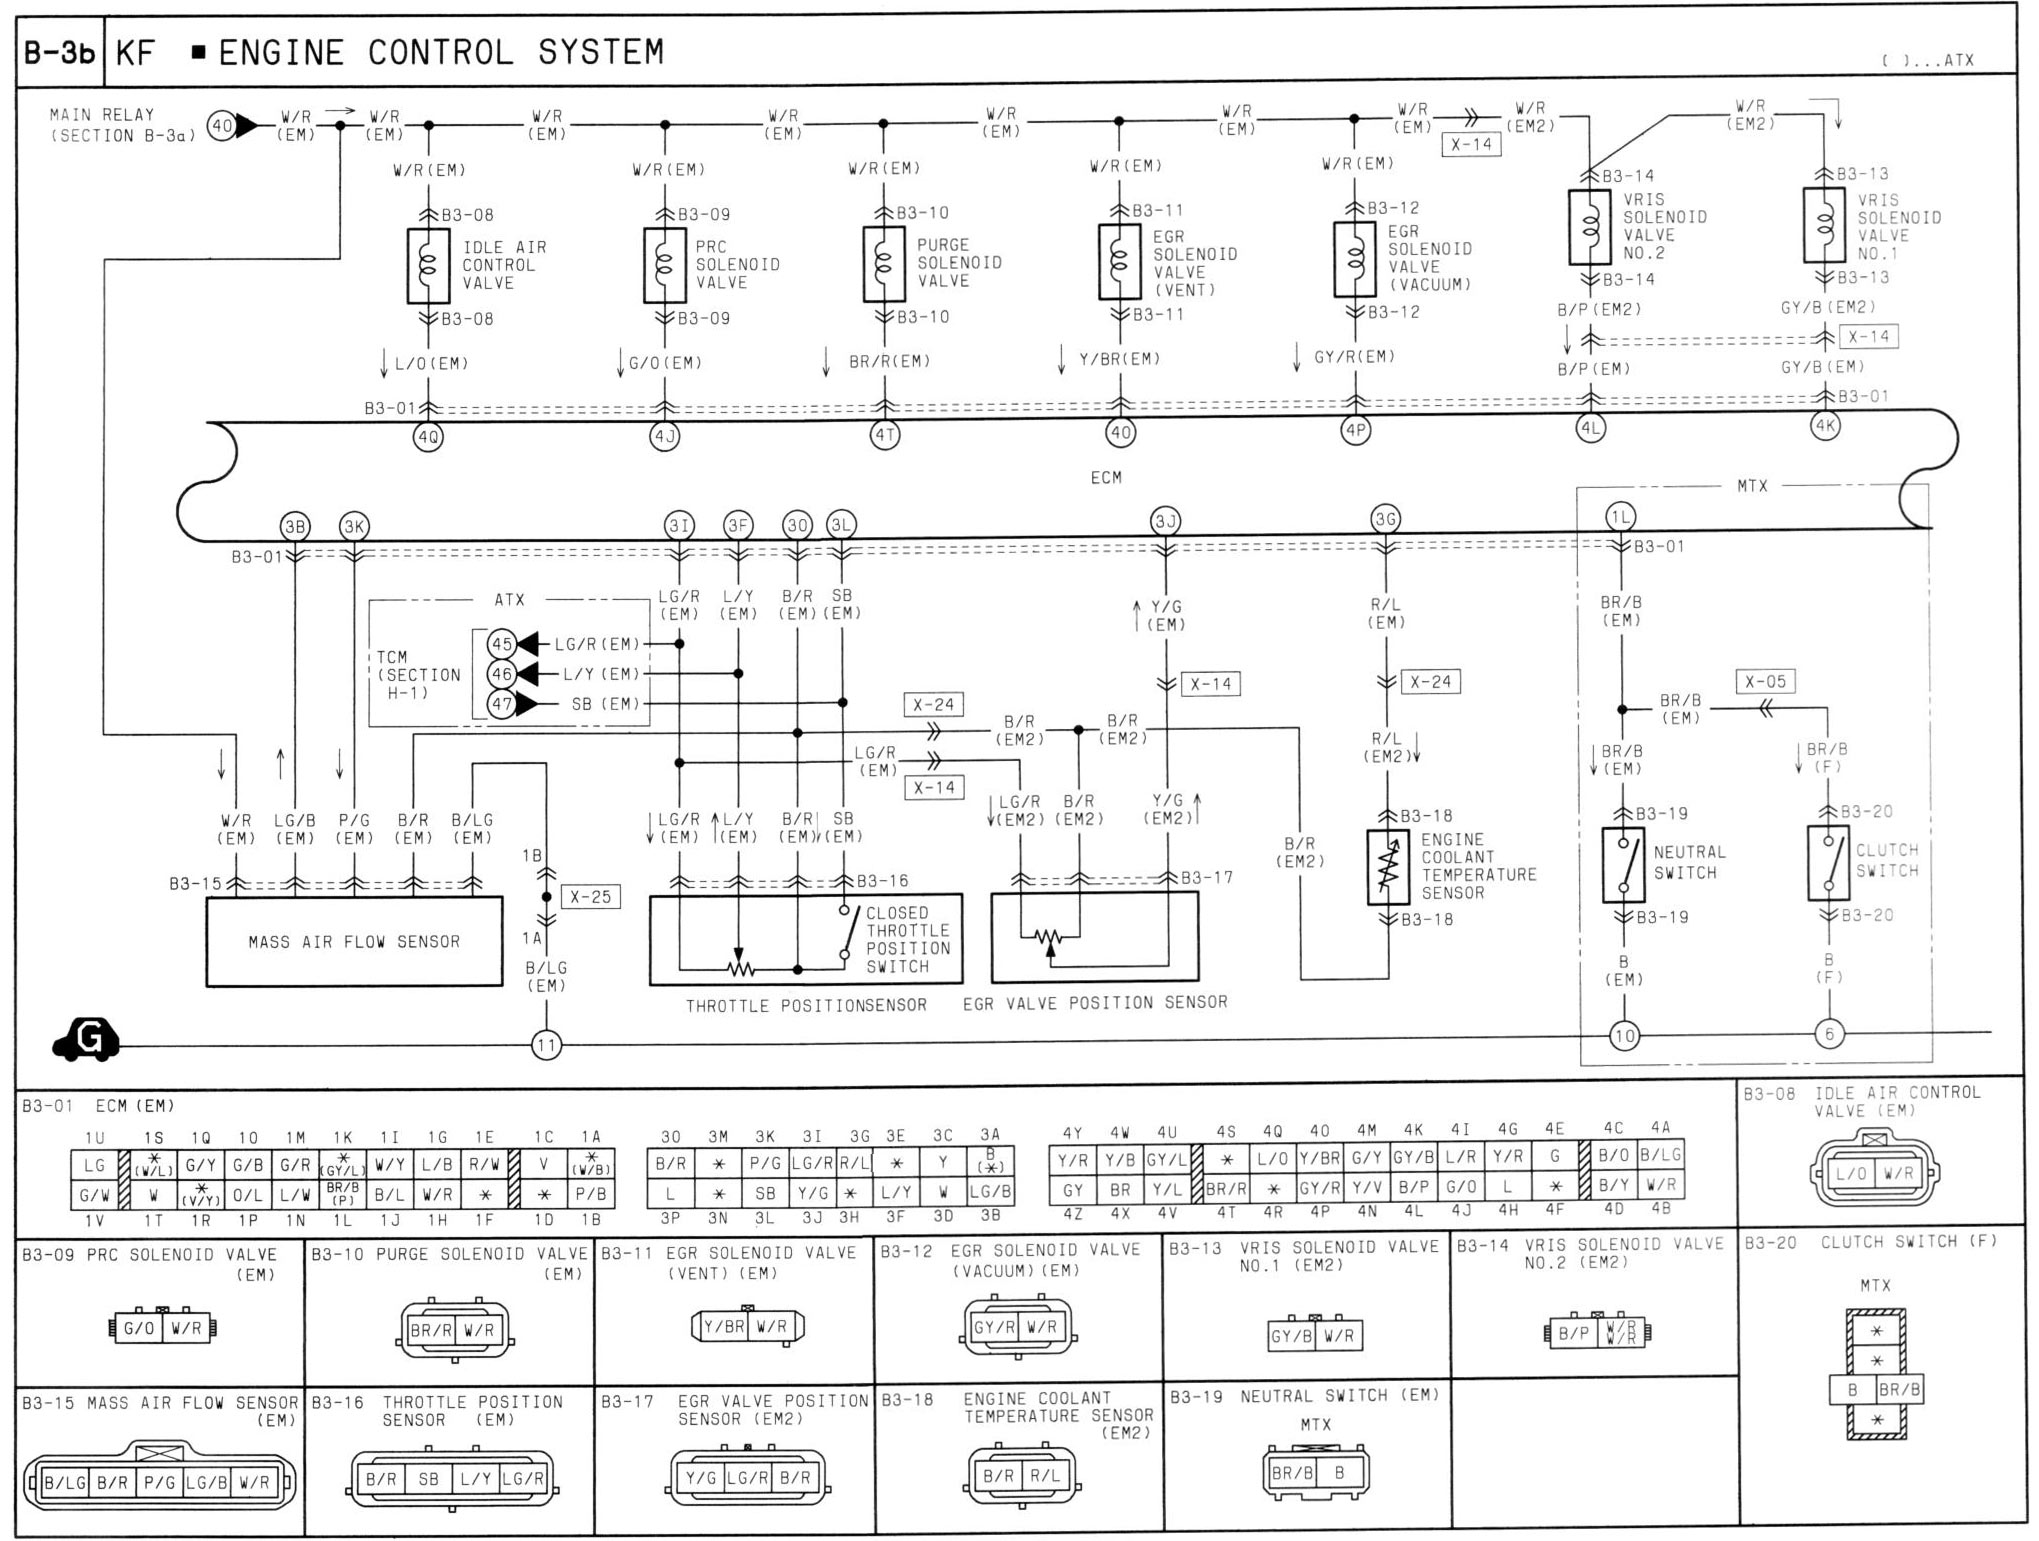 1995 mazda lantis engine wiring diagram astinagt forums